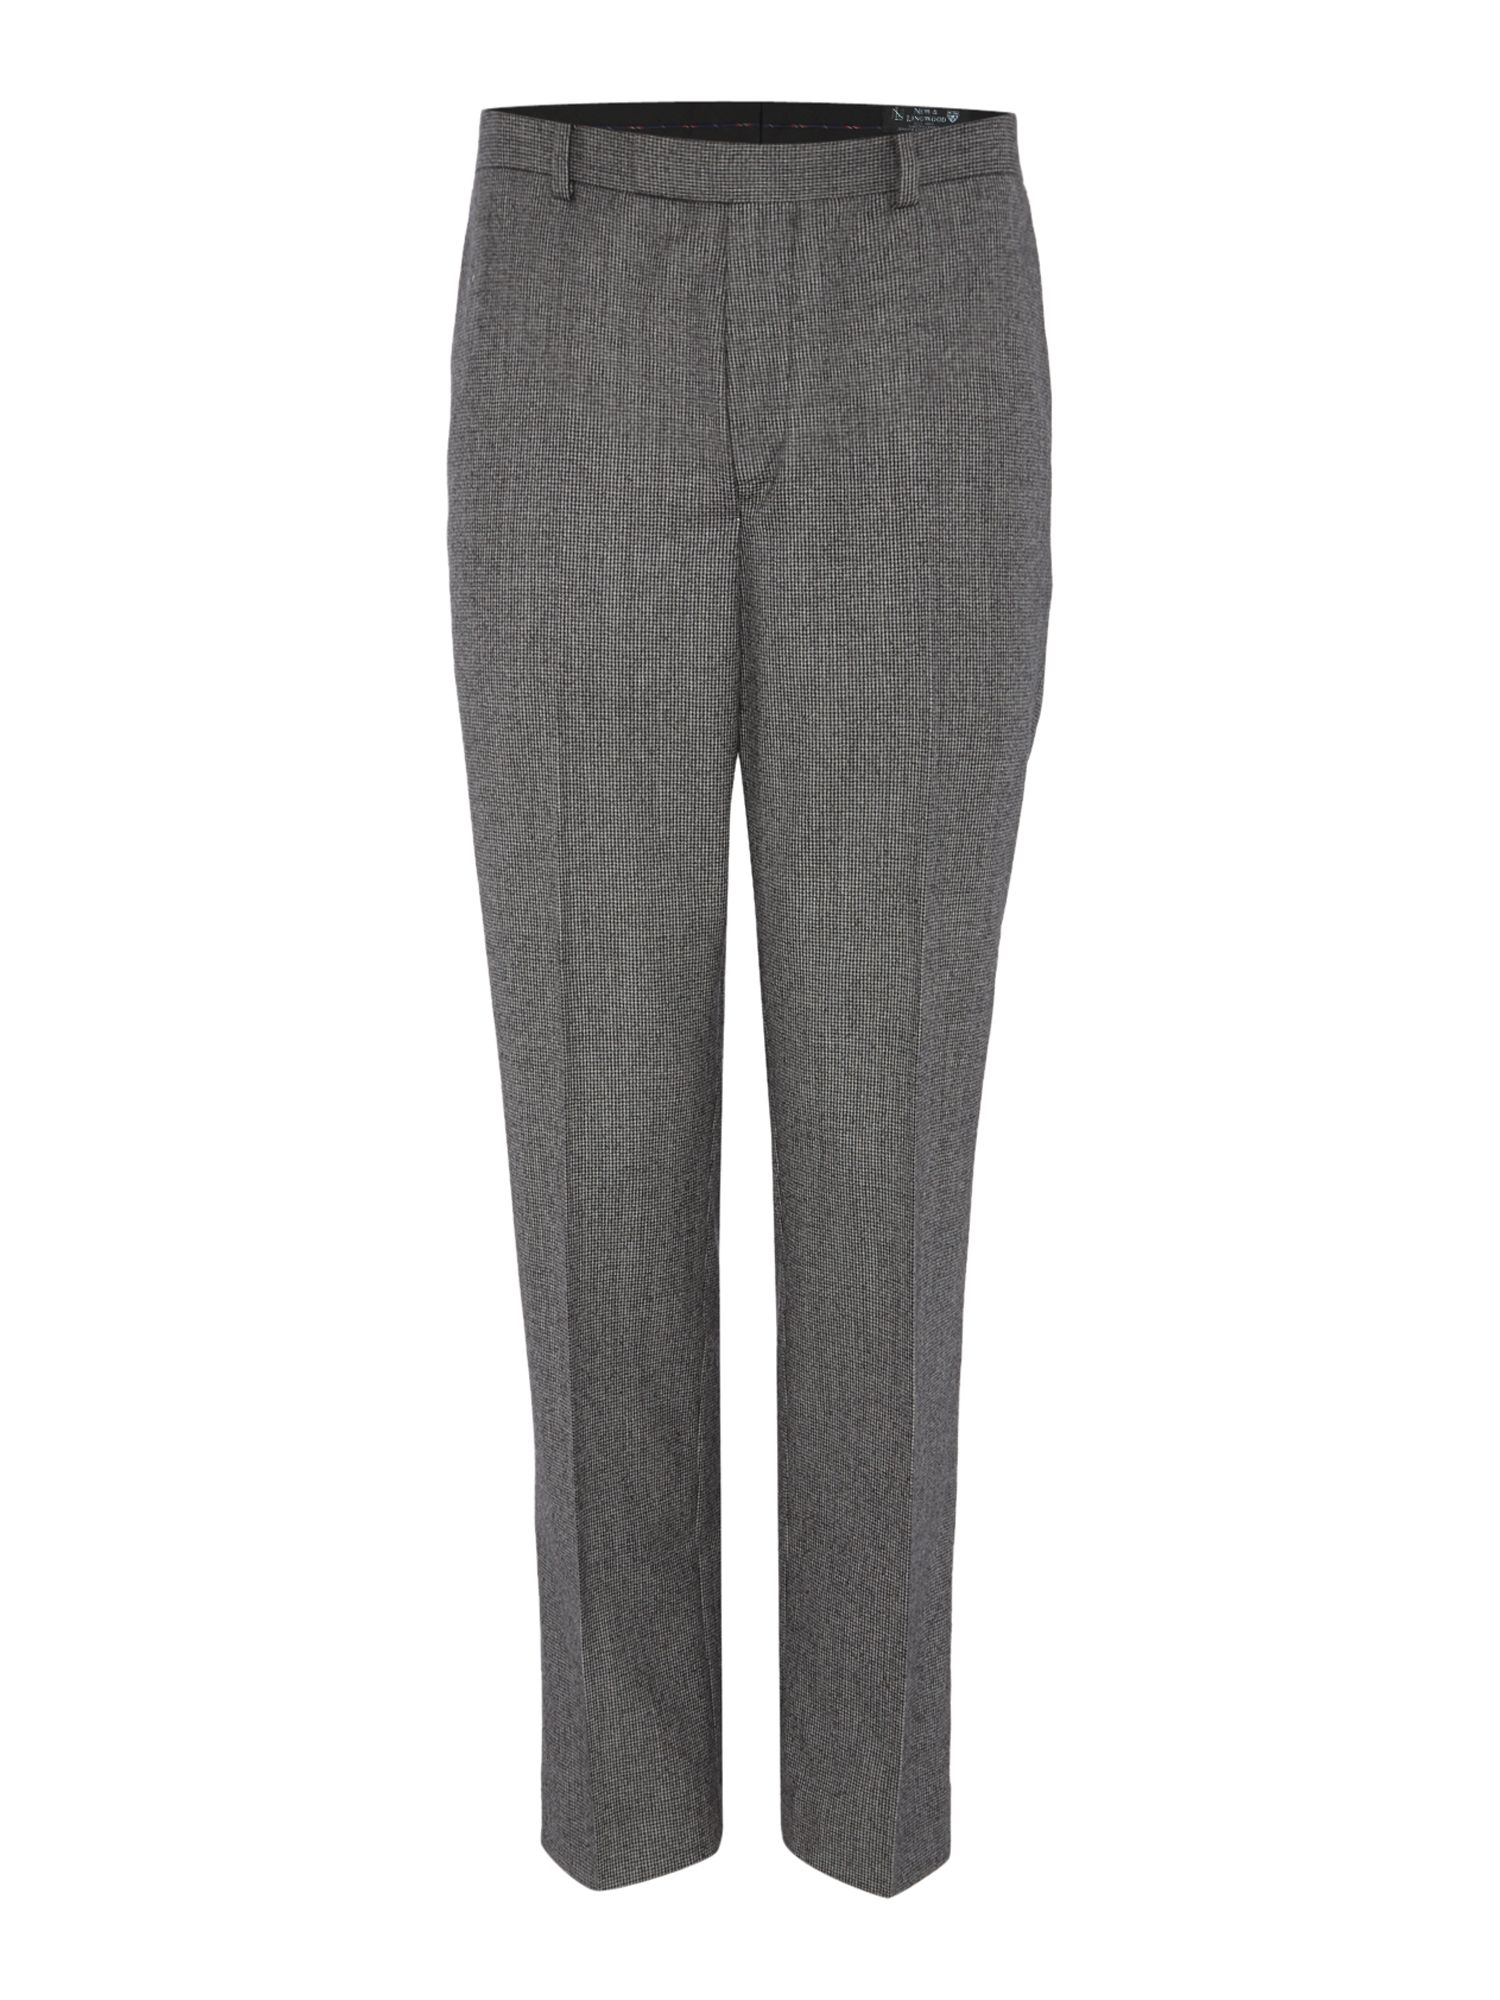 Men's New & Lingwood Hollow Dogtooth Suit Trouser, Grey